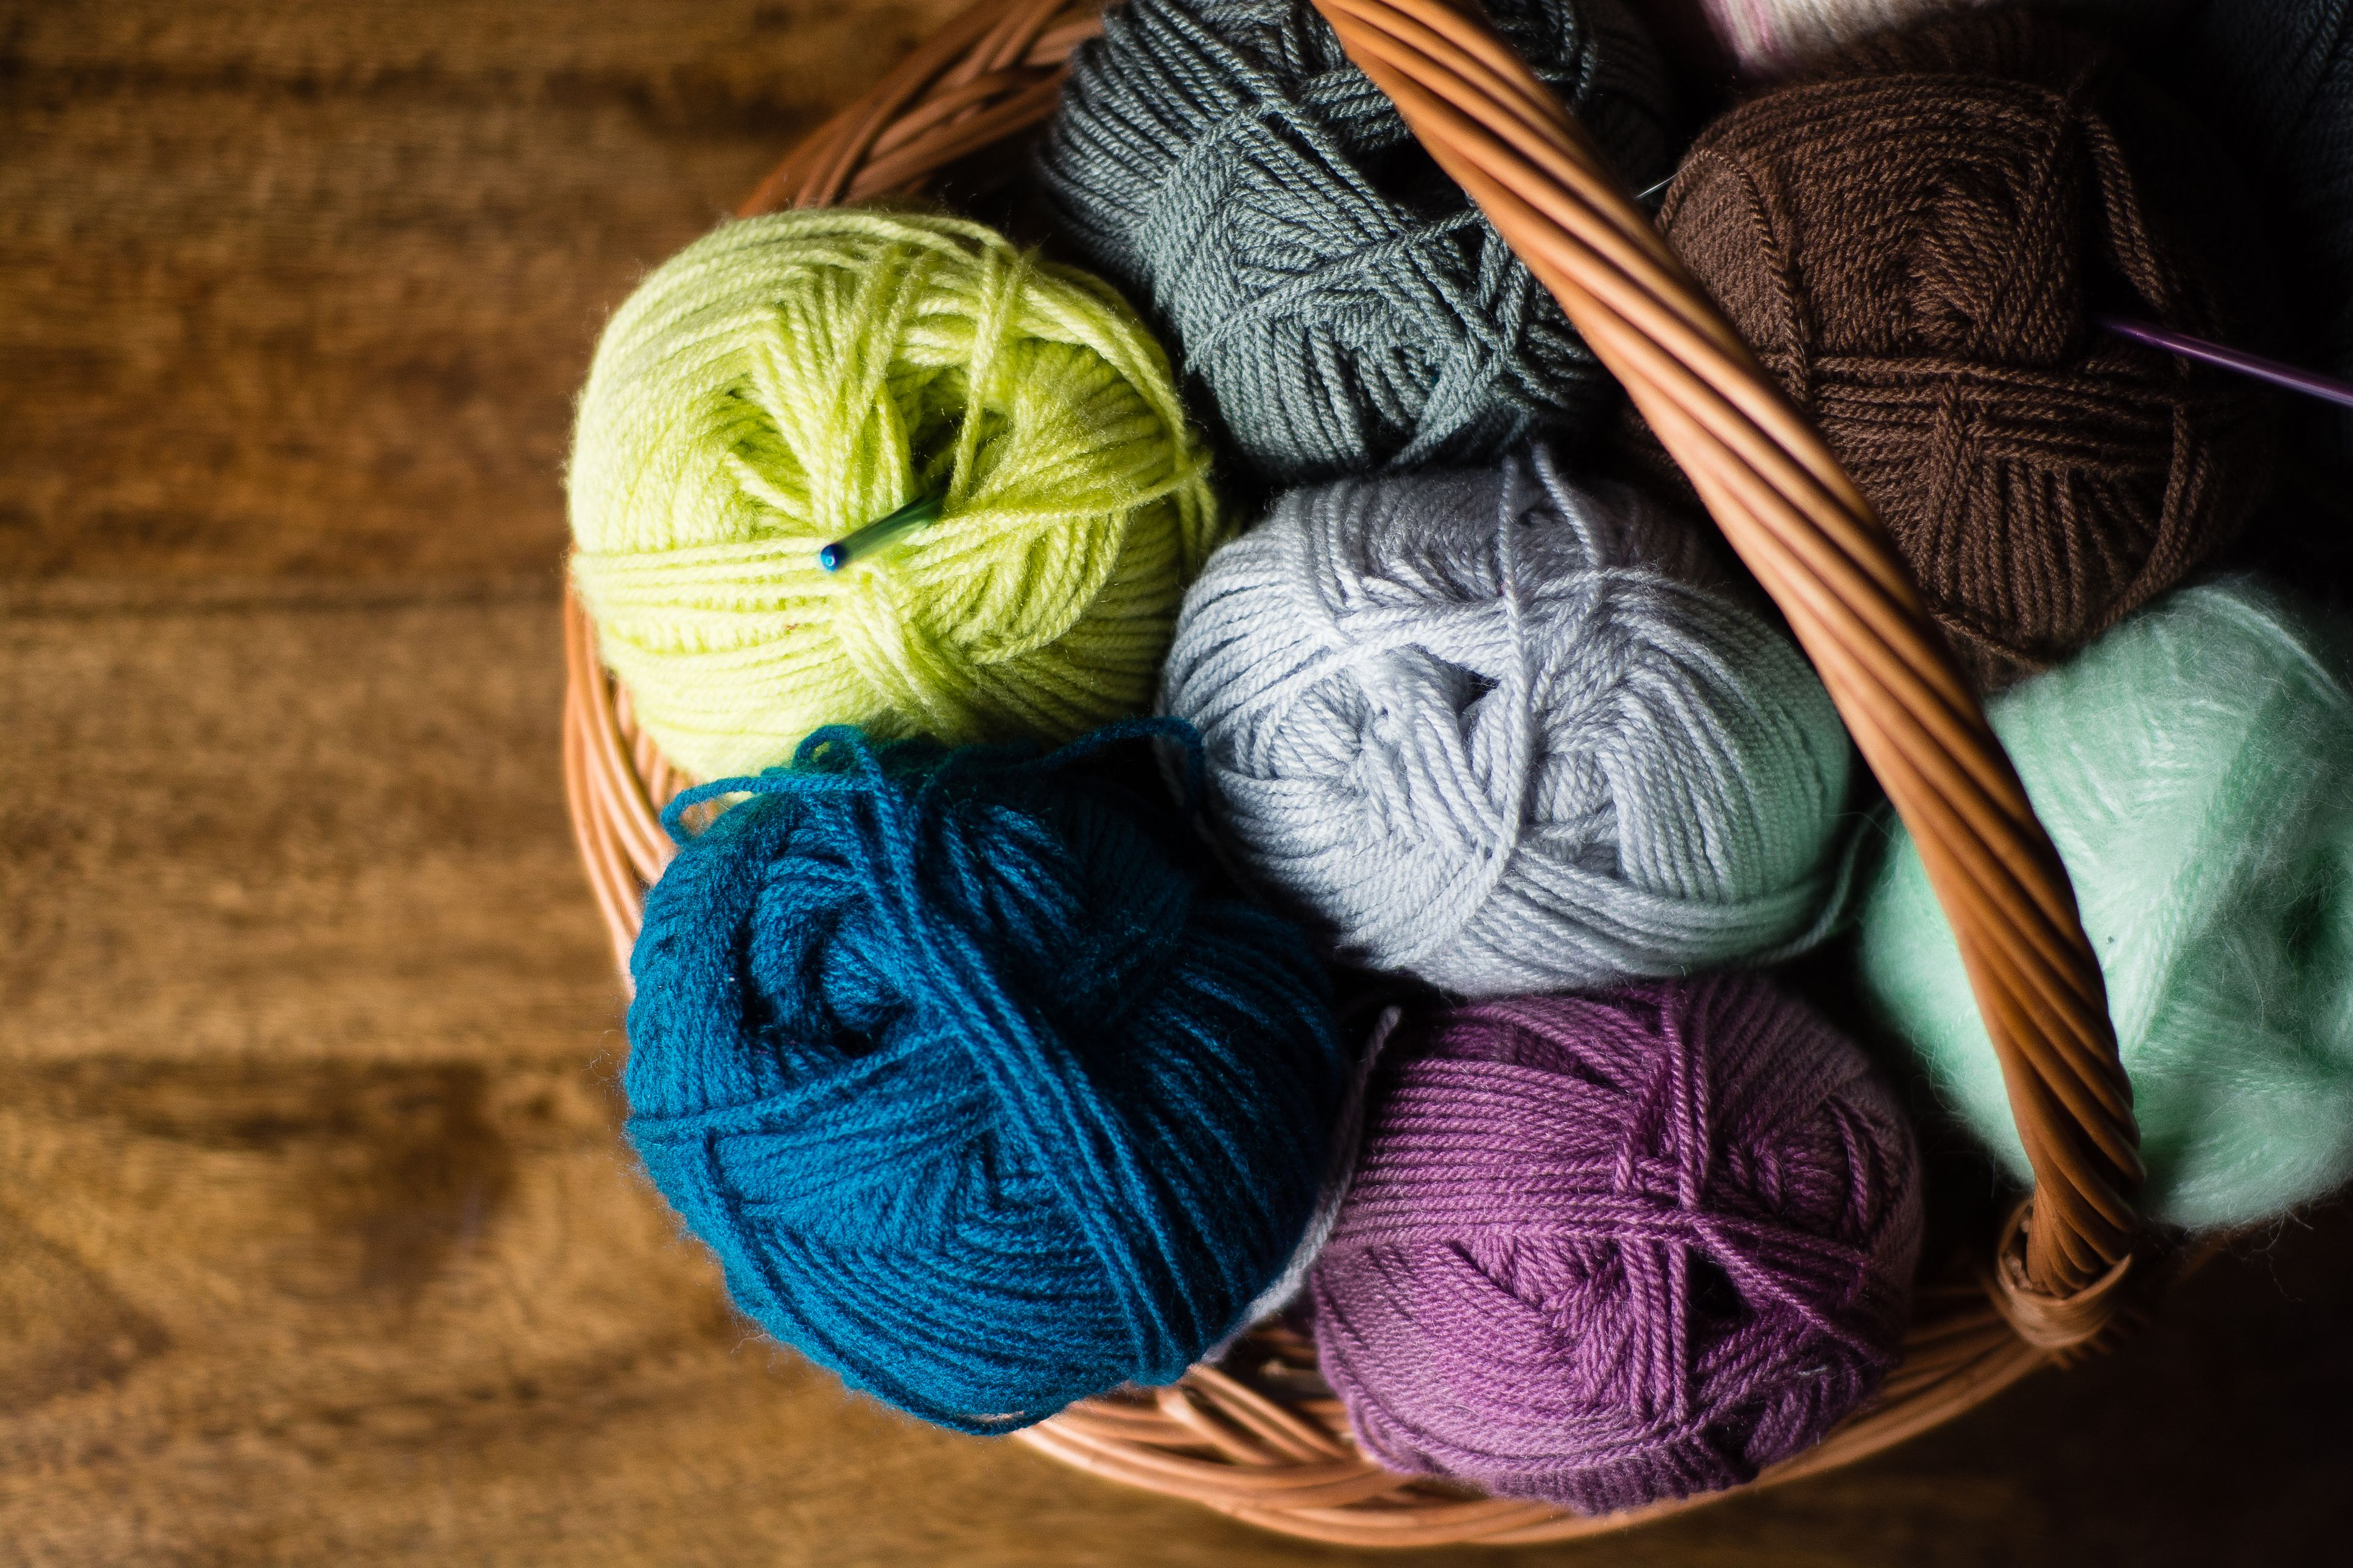 New to Knitting? Learn How to Read and Understand a Knitting Pattern